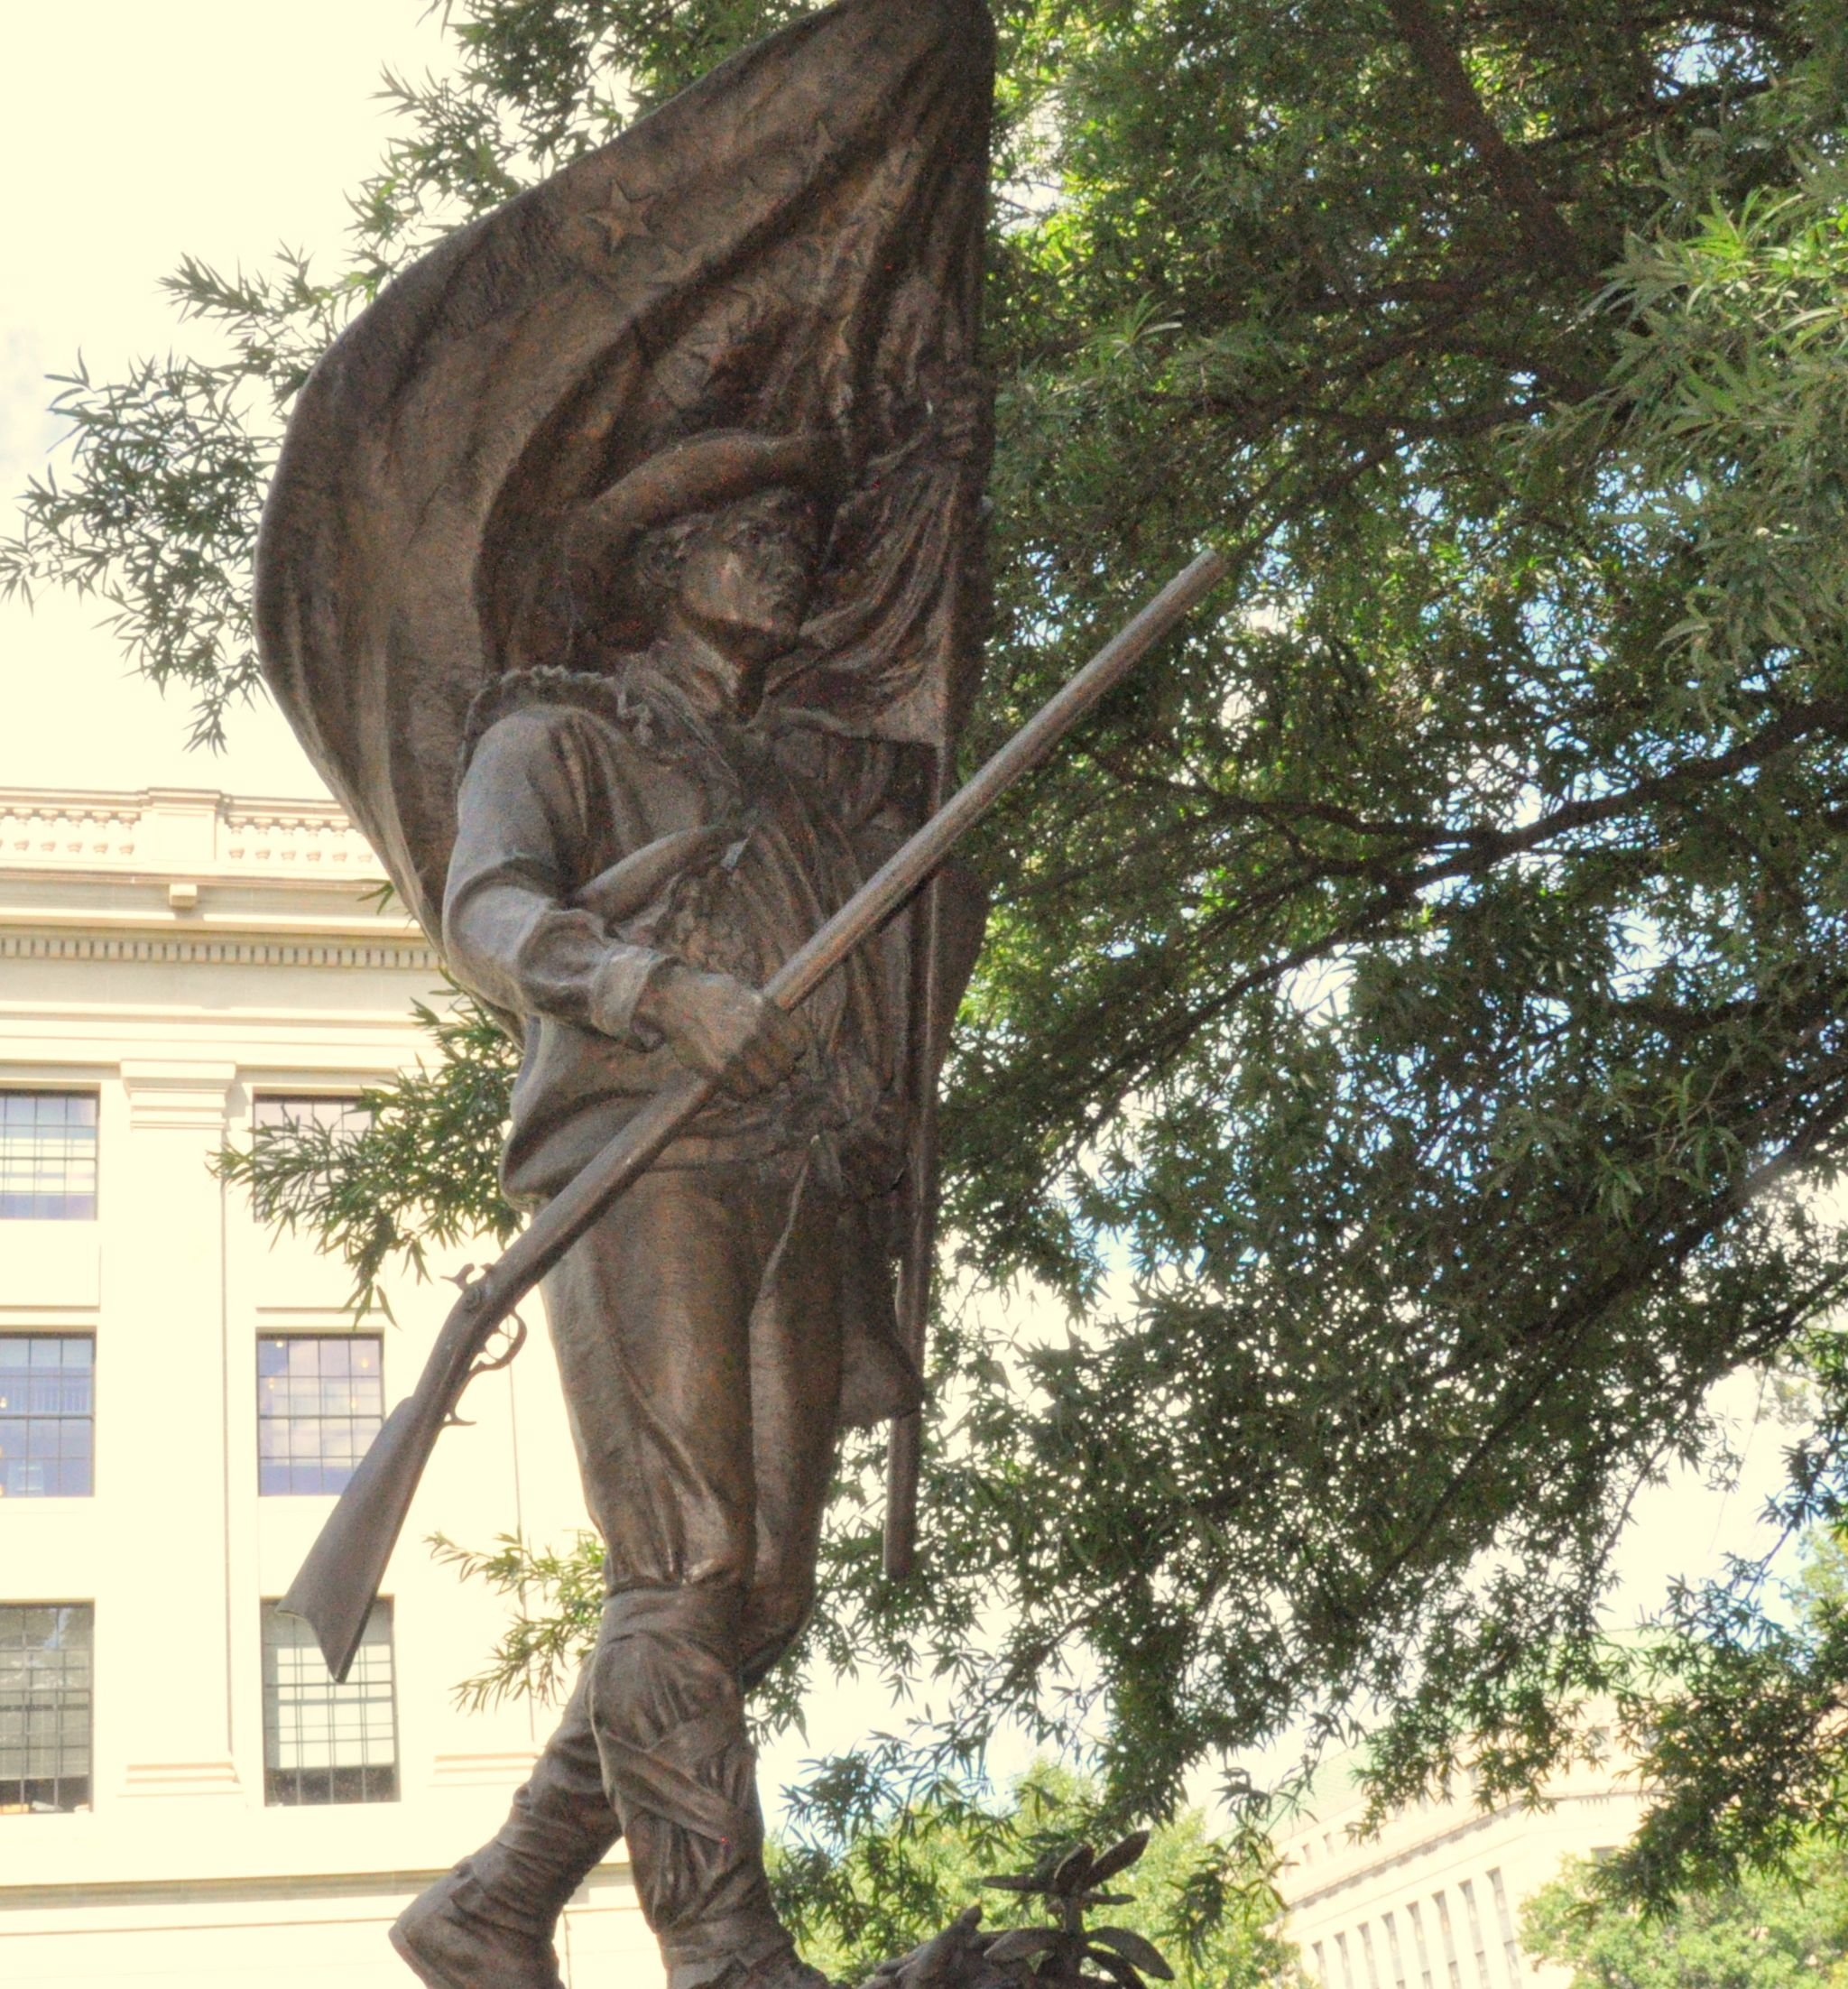 Alternate view of the statue.